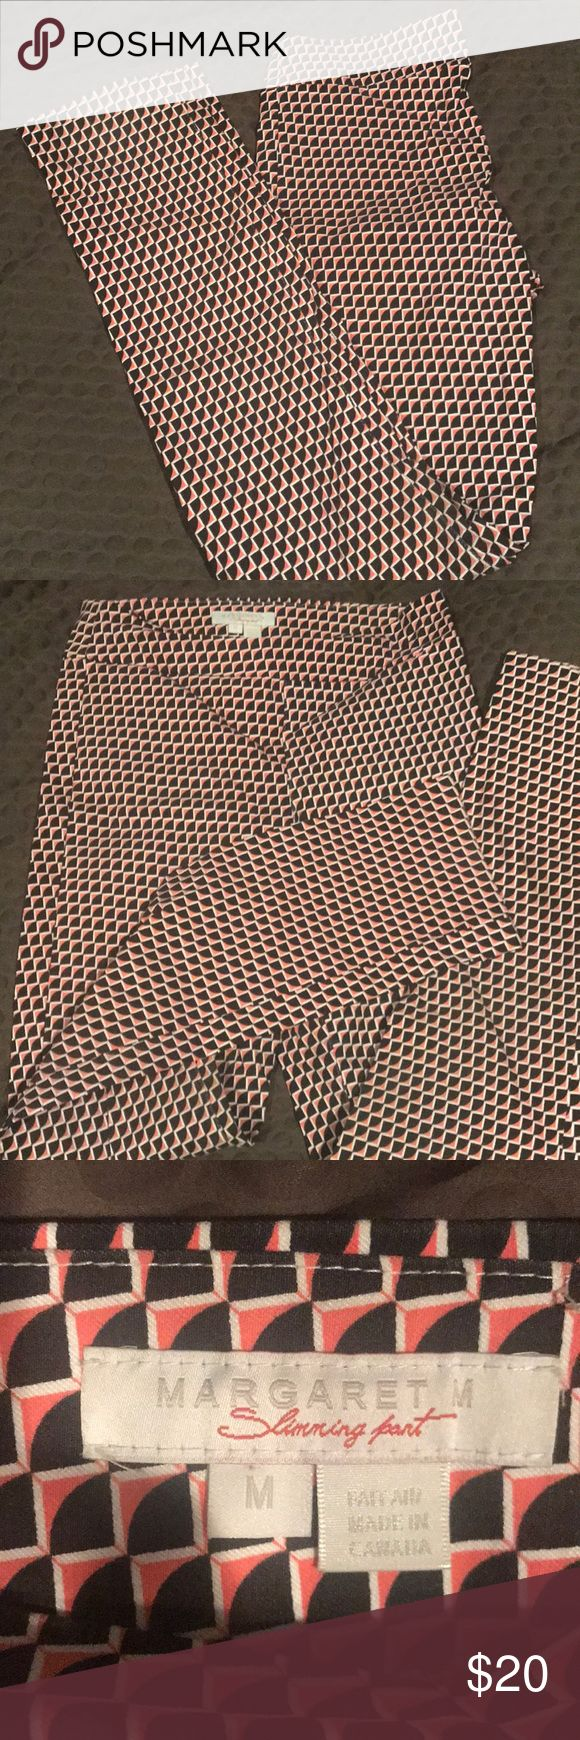 Margaret M Stitch Fix skinny pant Pull on these super comfy skinny pants and show your creative side! Love the geometric pattern and so comfortable to wear margaret M Pants Skinny